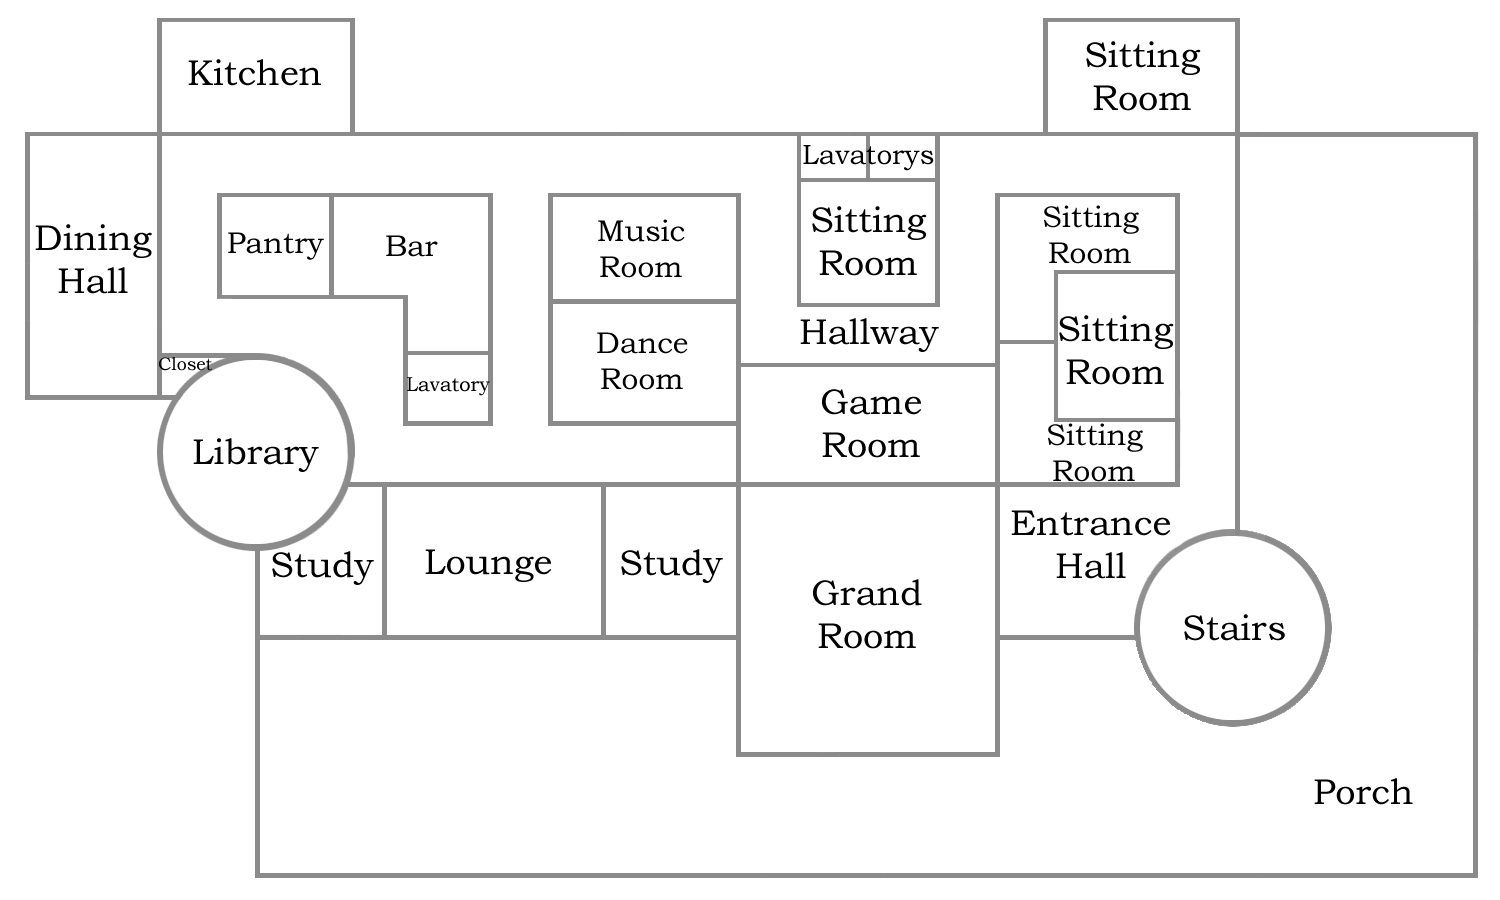 Floor Plans for the main or first floor of BFC Stronghold.